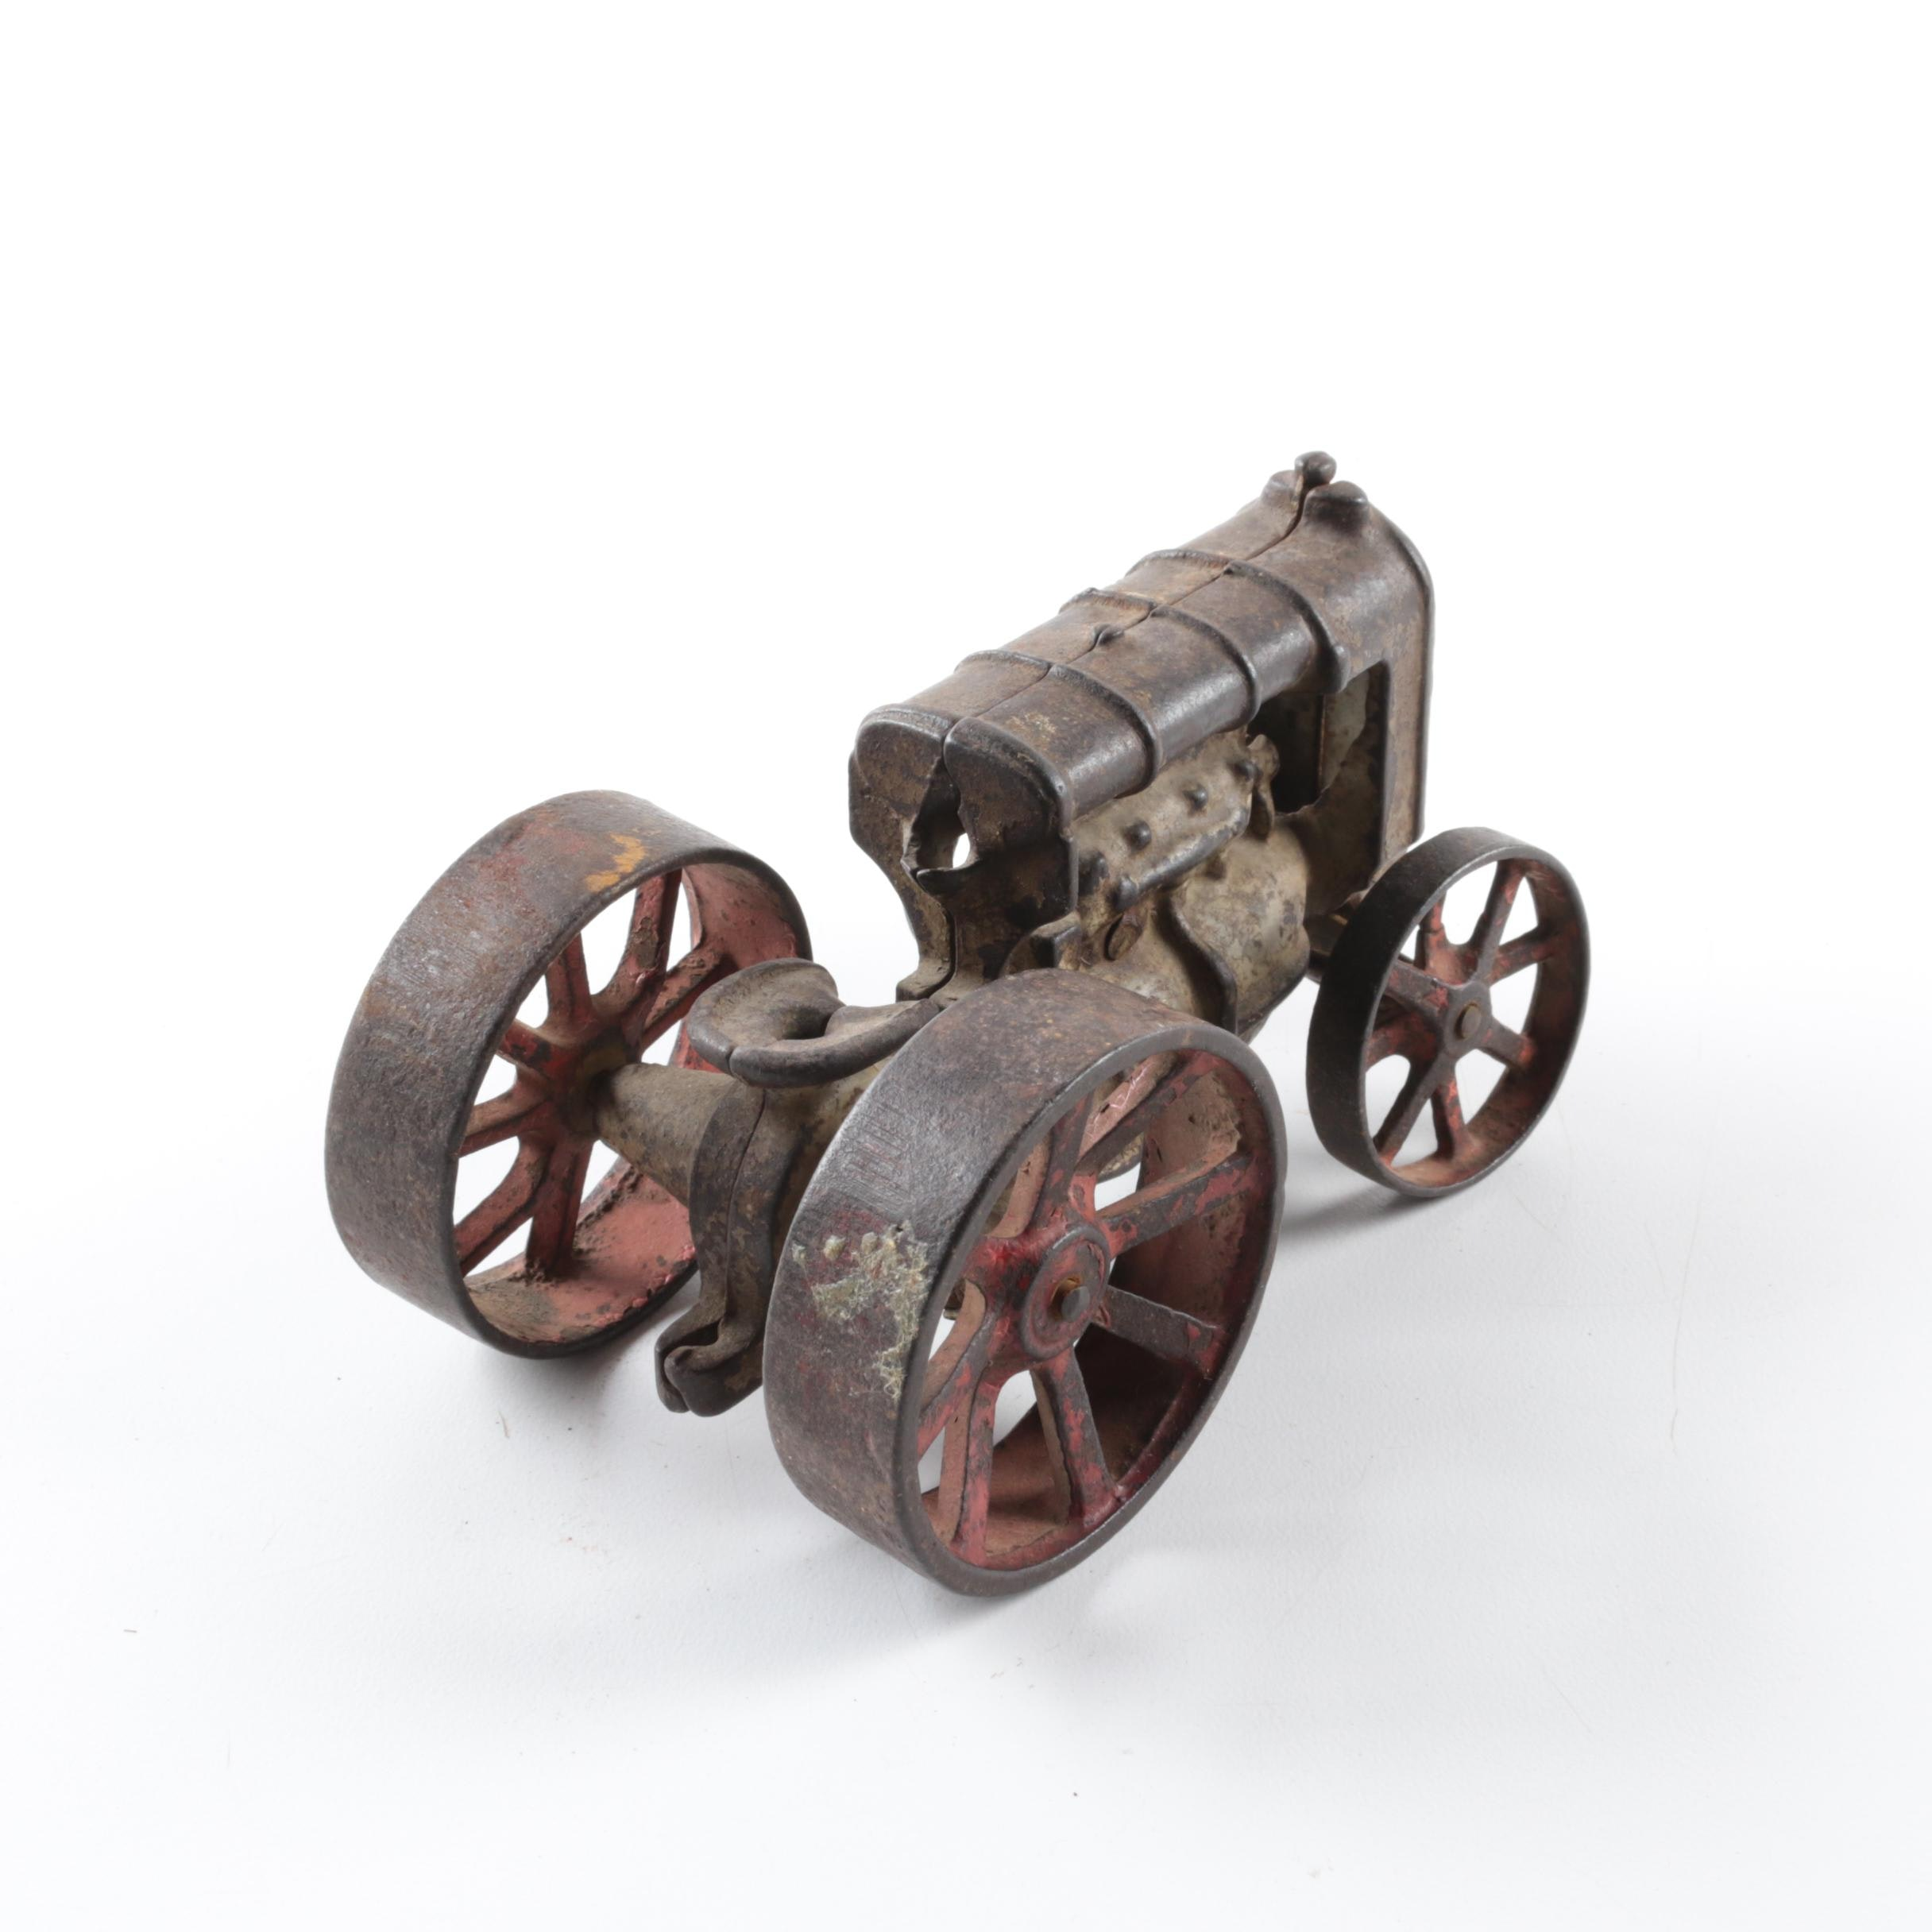 Antique Fordson Cast Iron Tractor by Arcade